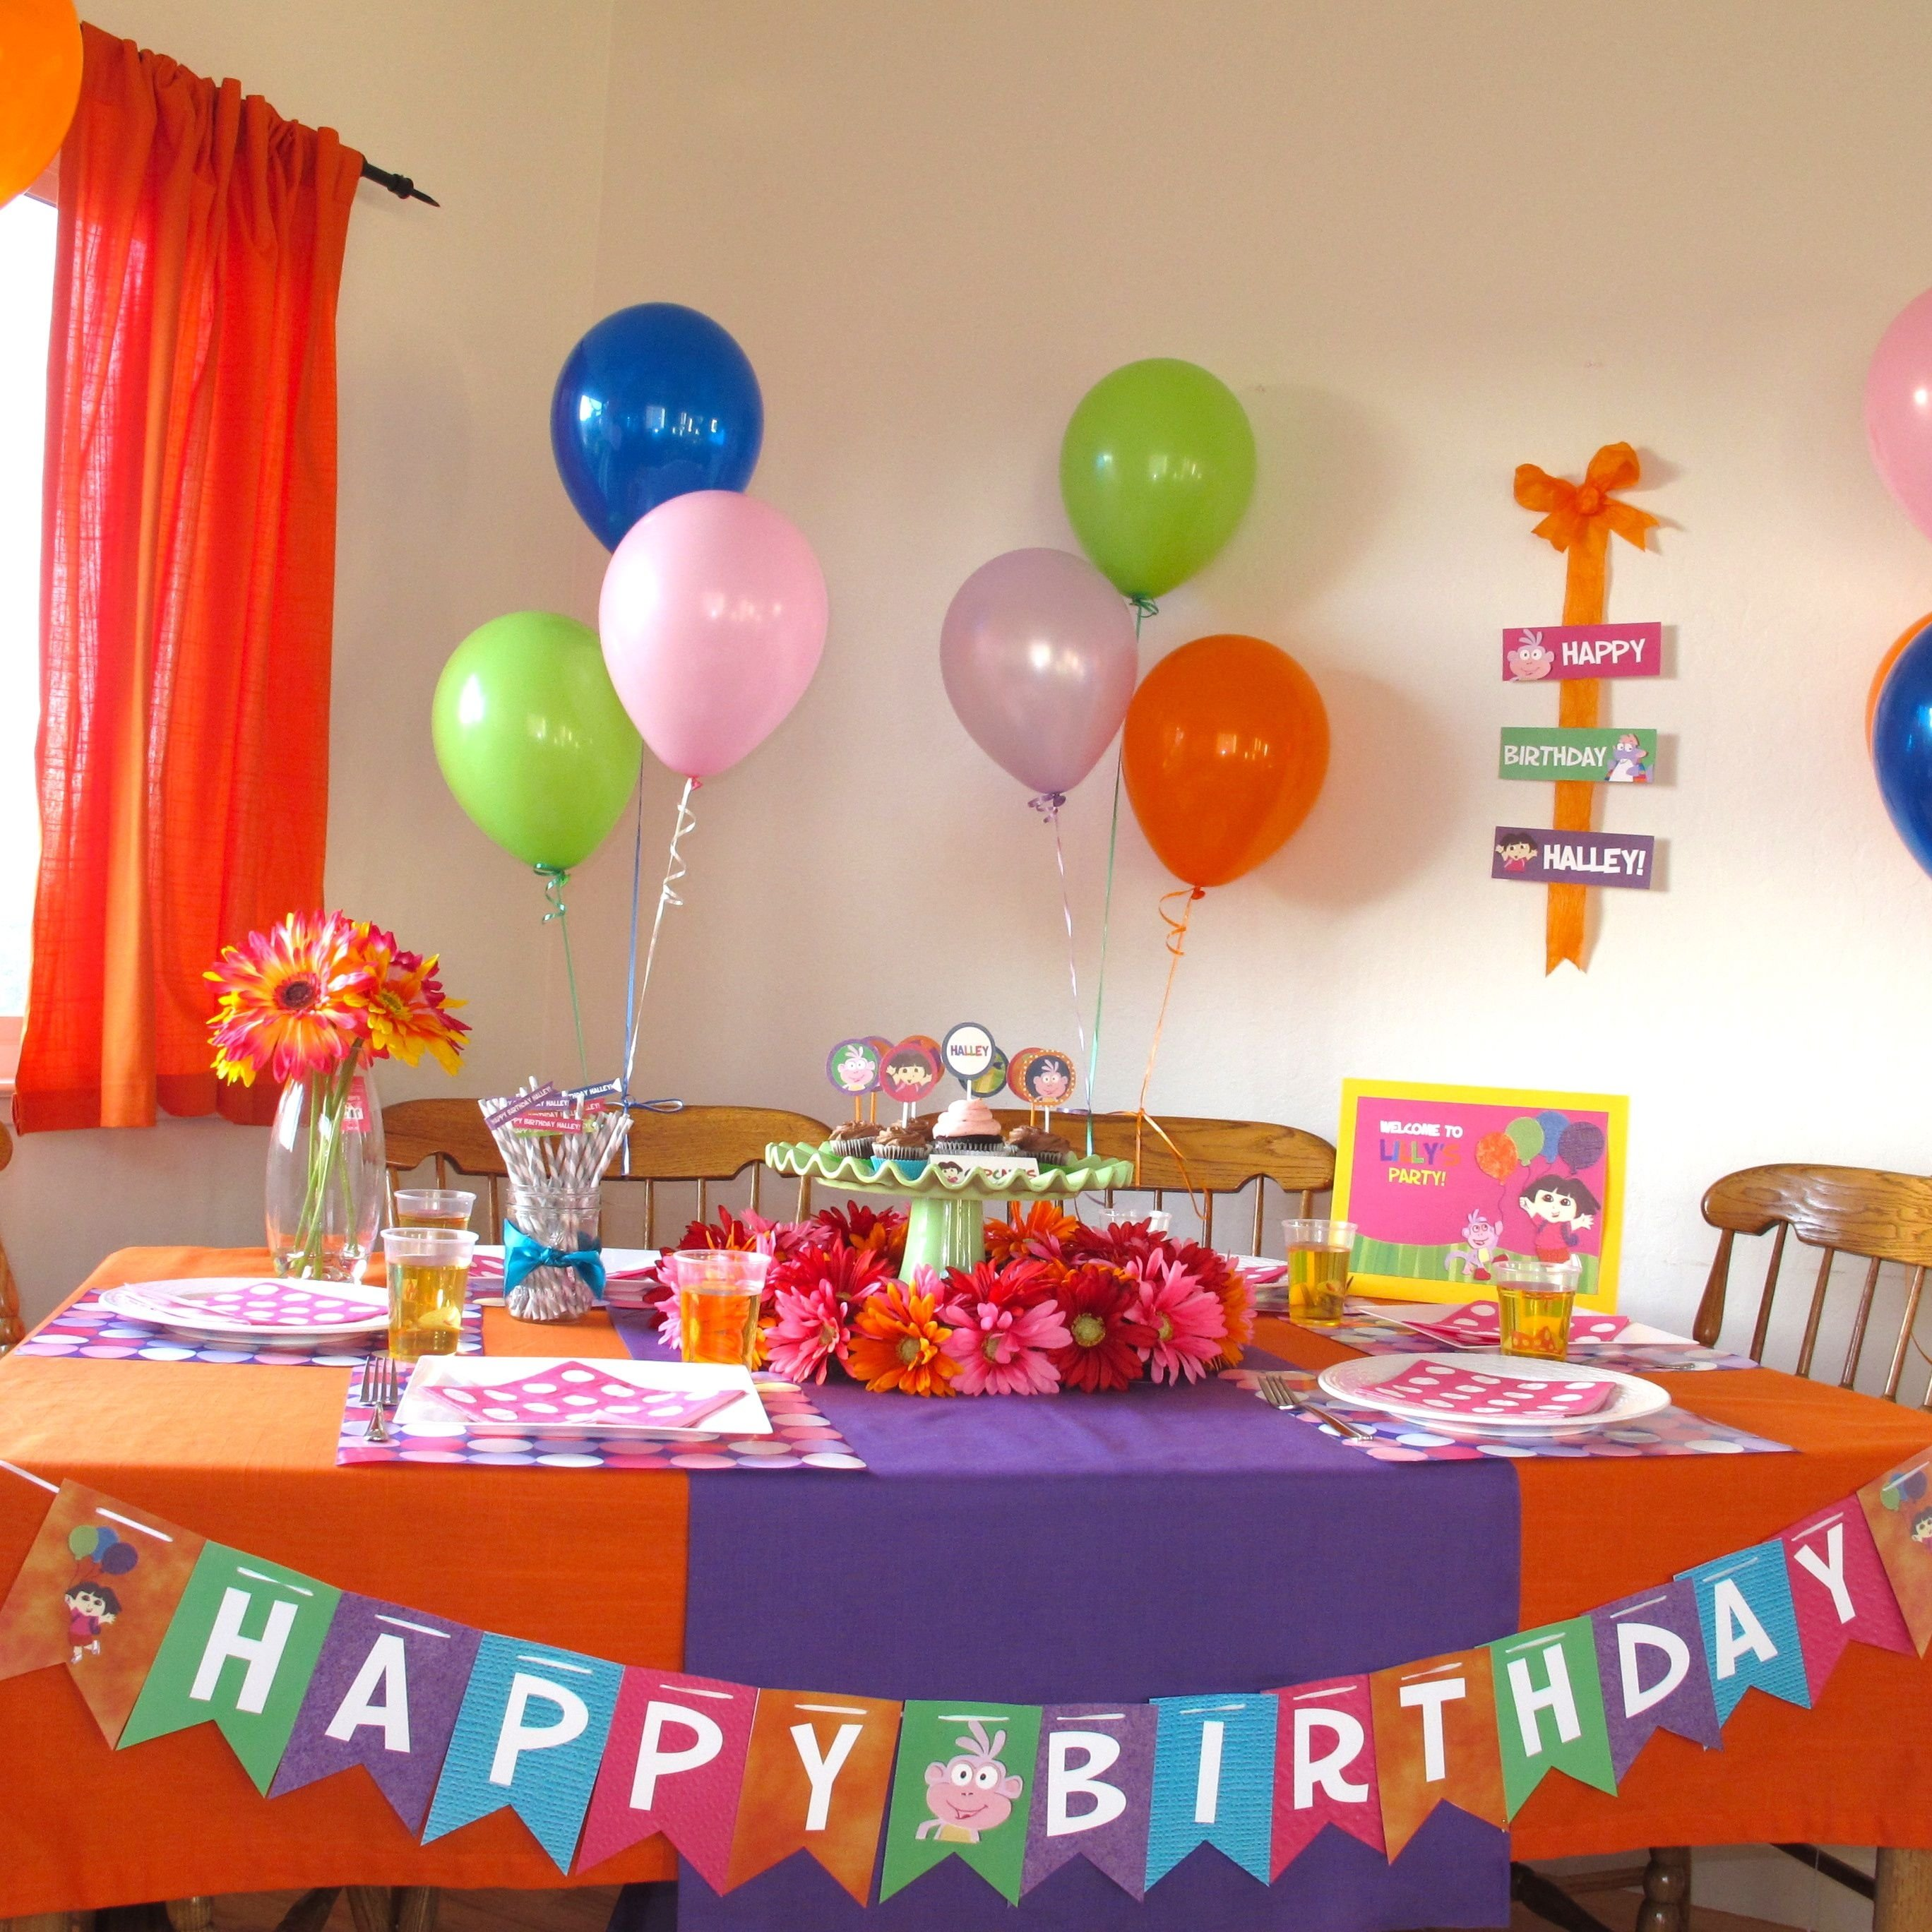 10 Lovable Dora The Explorer Party Ideas dora the explorer party pics banners birthdays and birthday party 1